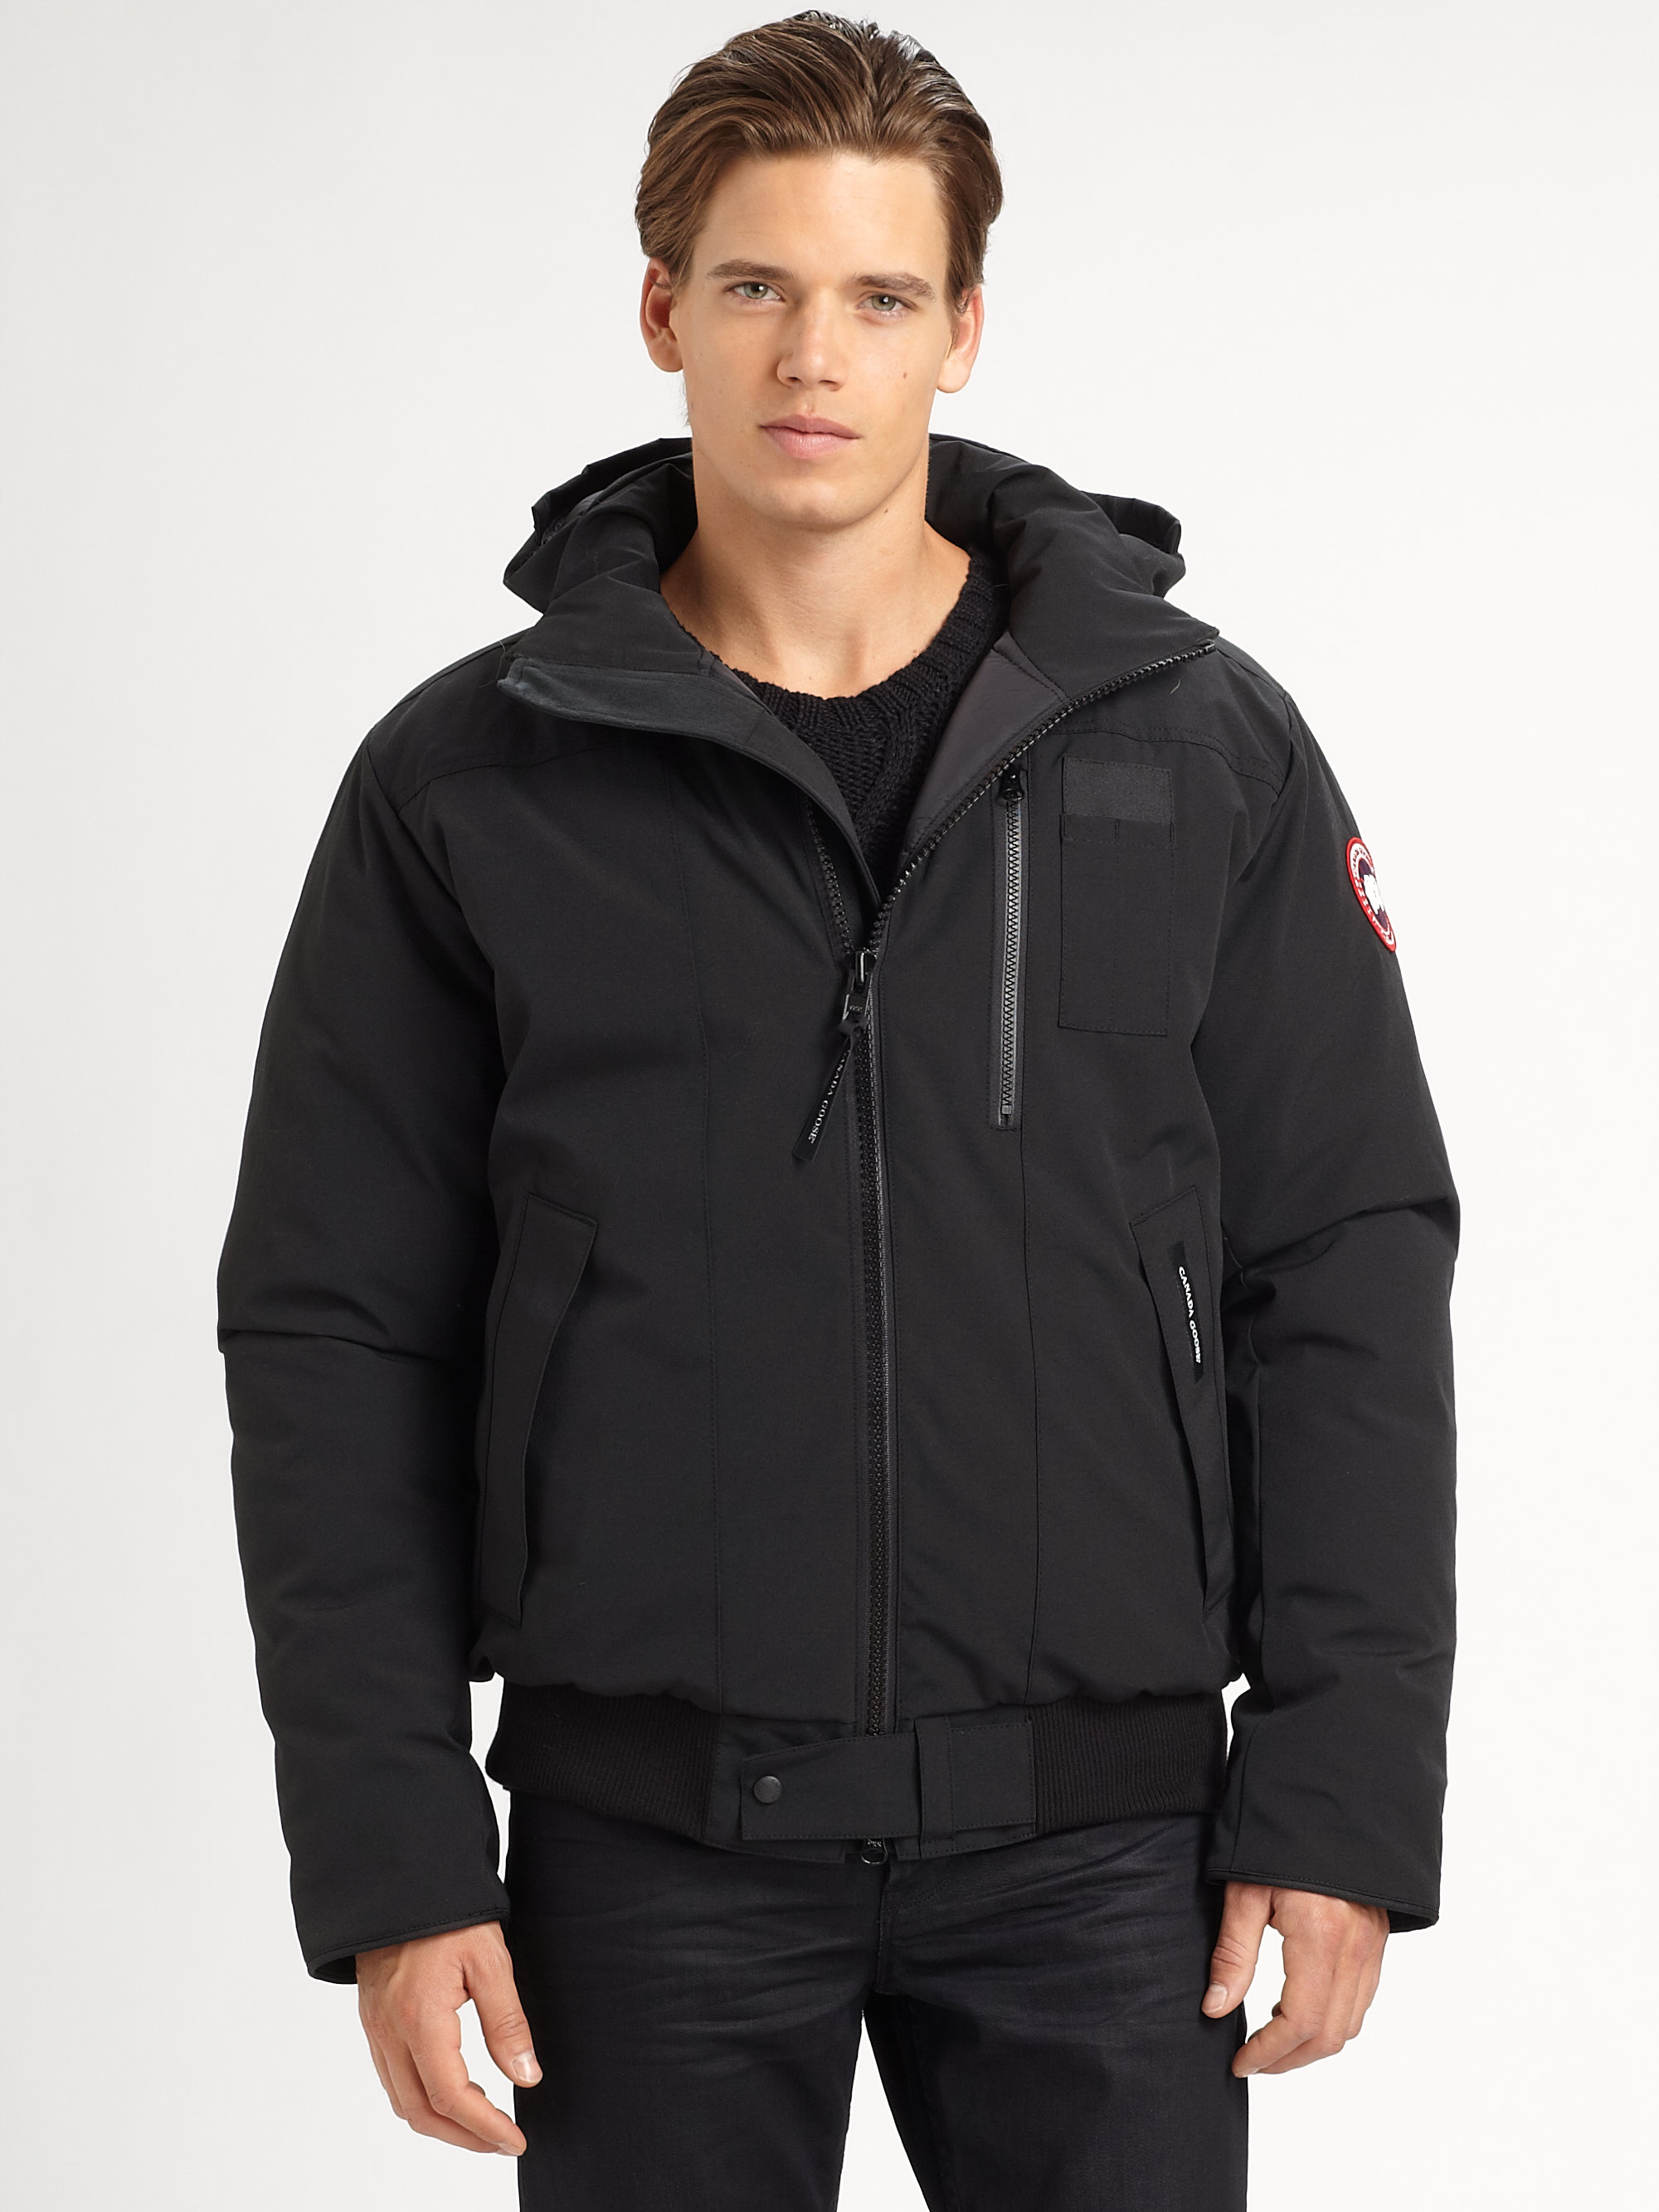 canada goose borden bomber jacket in black for men lyst. Black Bedroom Furniture Sets. Home Design Ideas